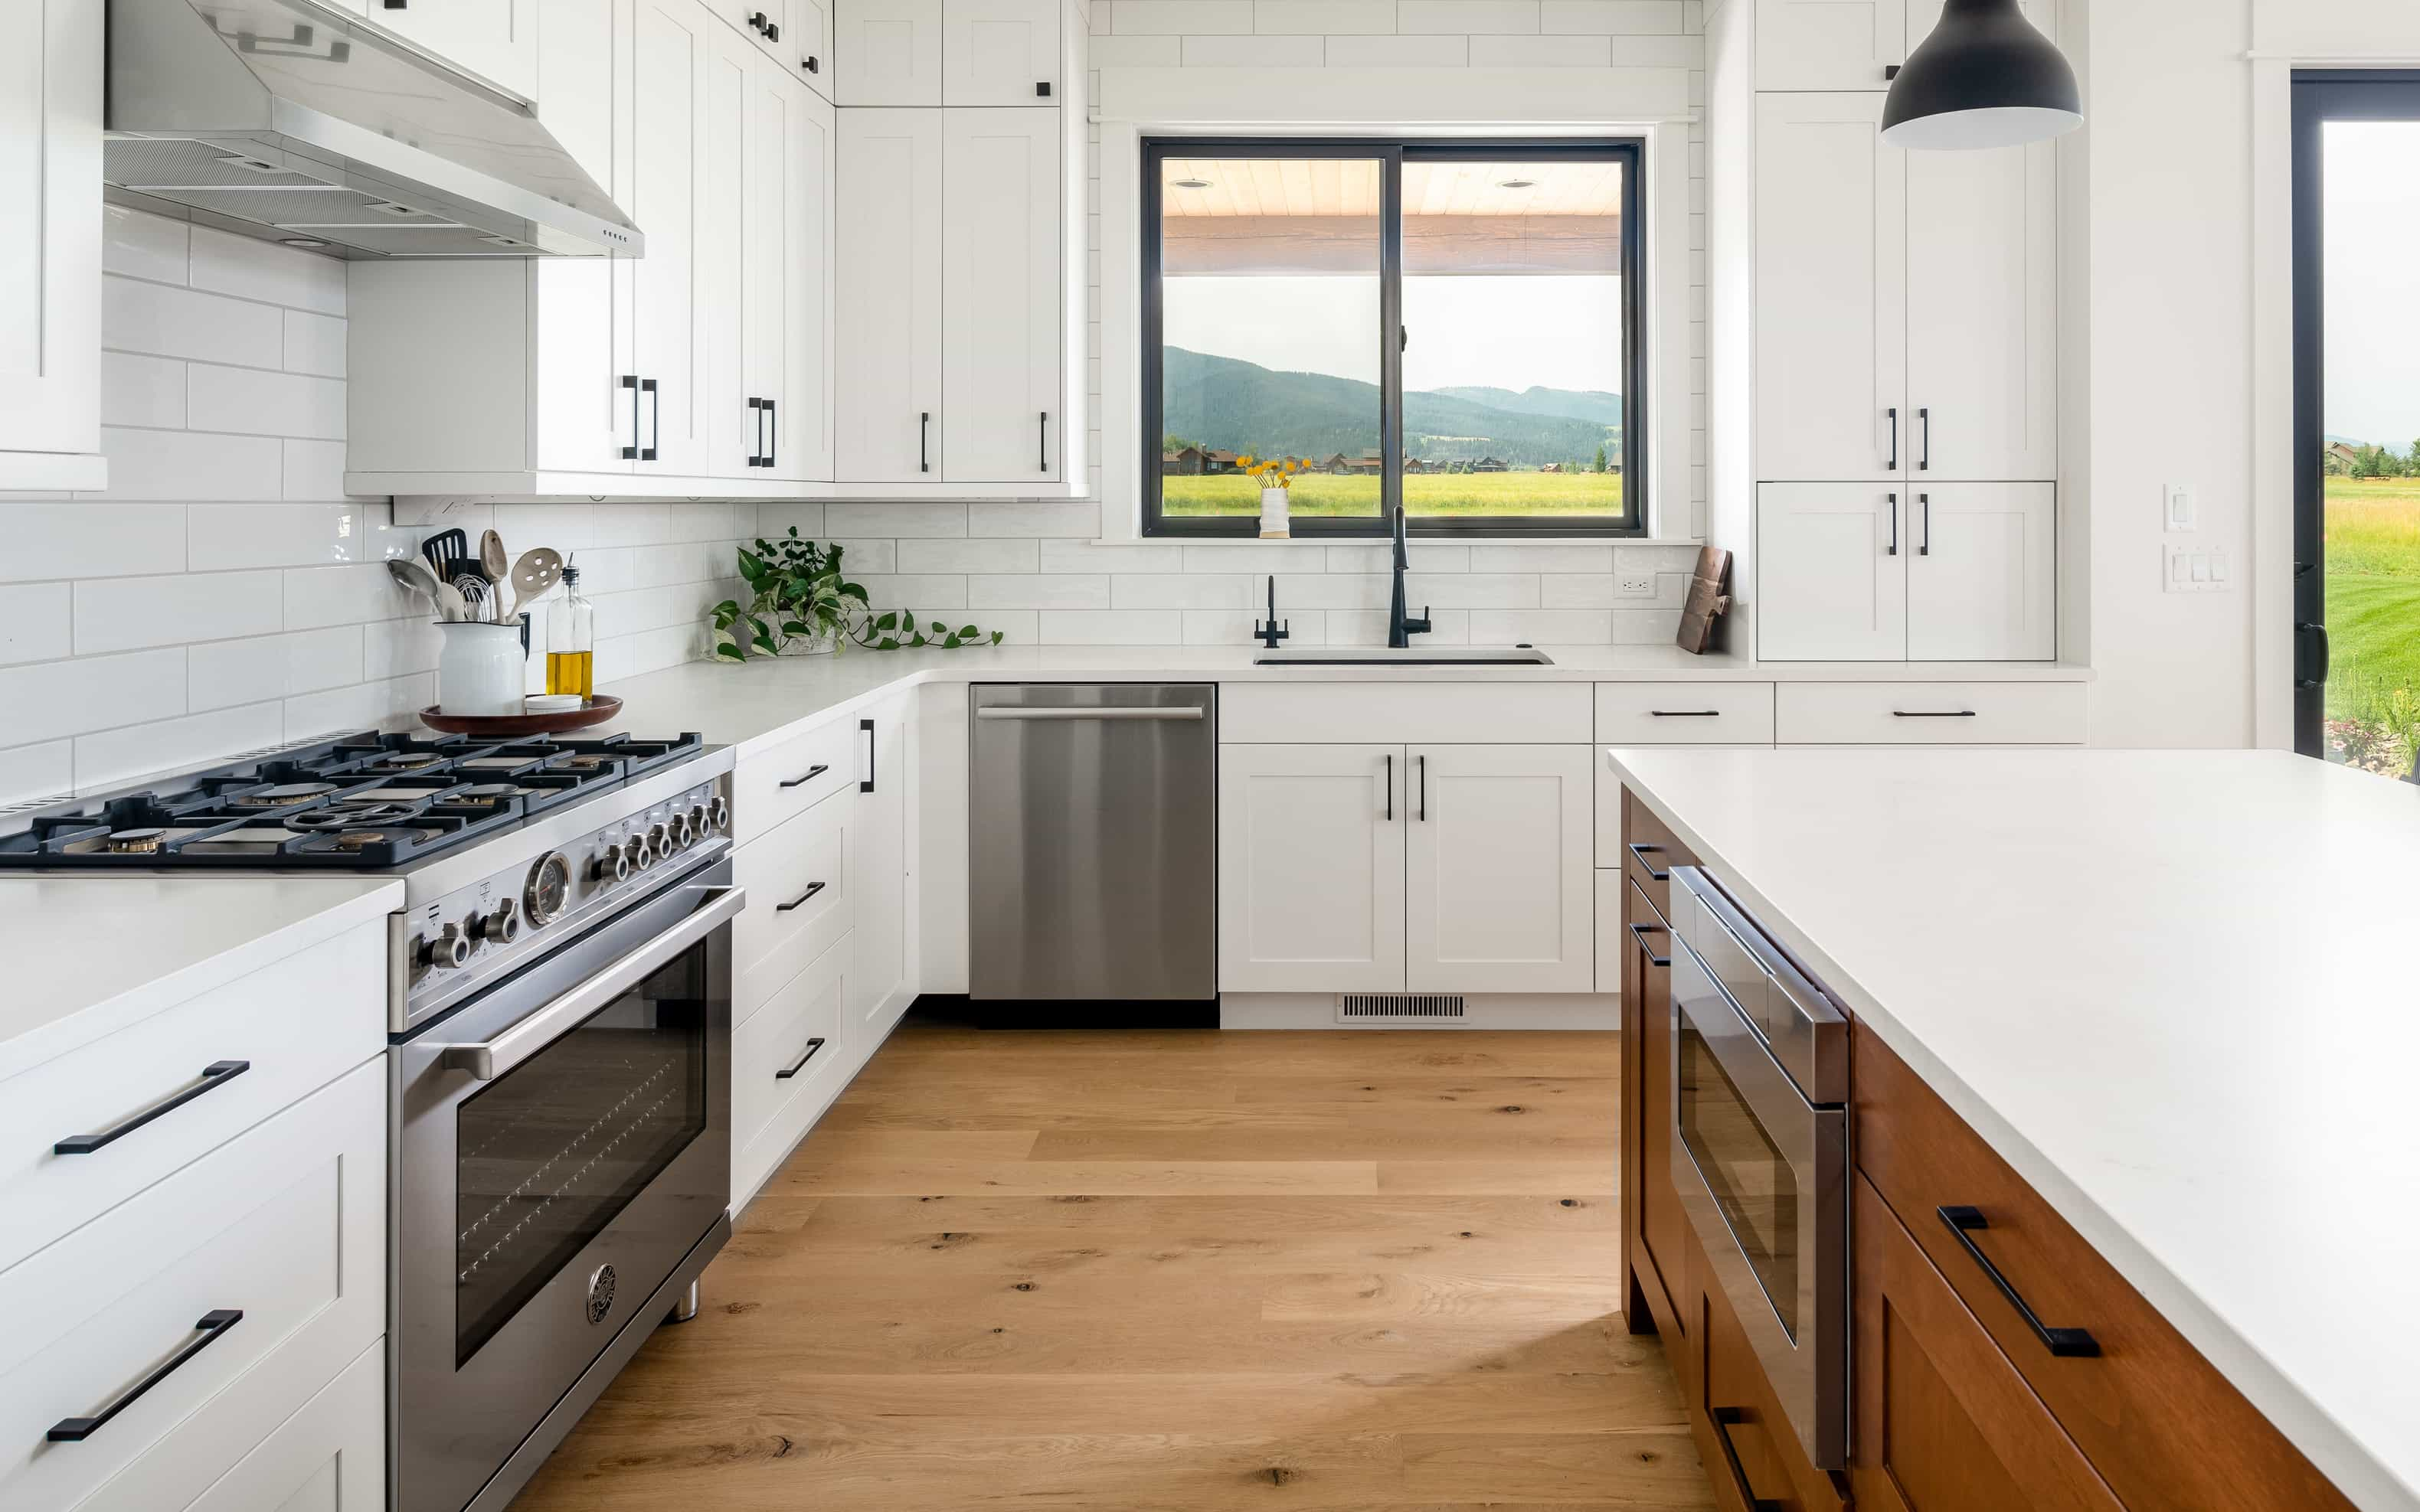 For this modern farmhouse, we created a clean, simple aesthetic through the use of white quartz, quartzite and ceramic subway tile. In the kitchen white quartz countertops were paired with white ceramic tile, white cabinetry and wood floors for this modern farmhouse look. The theme was carried into the bathrooms. Quartzite was used in the master bathroom and subway tile was used throughout, contributing to the clean lines and simple beauty of the space.